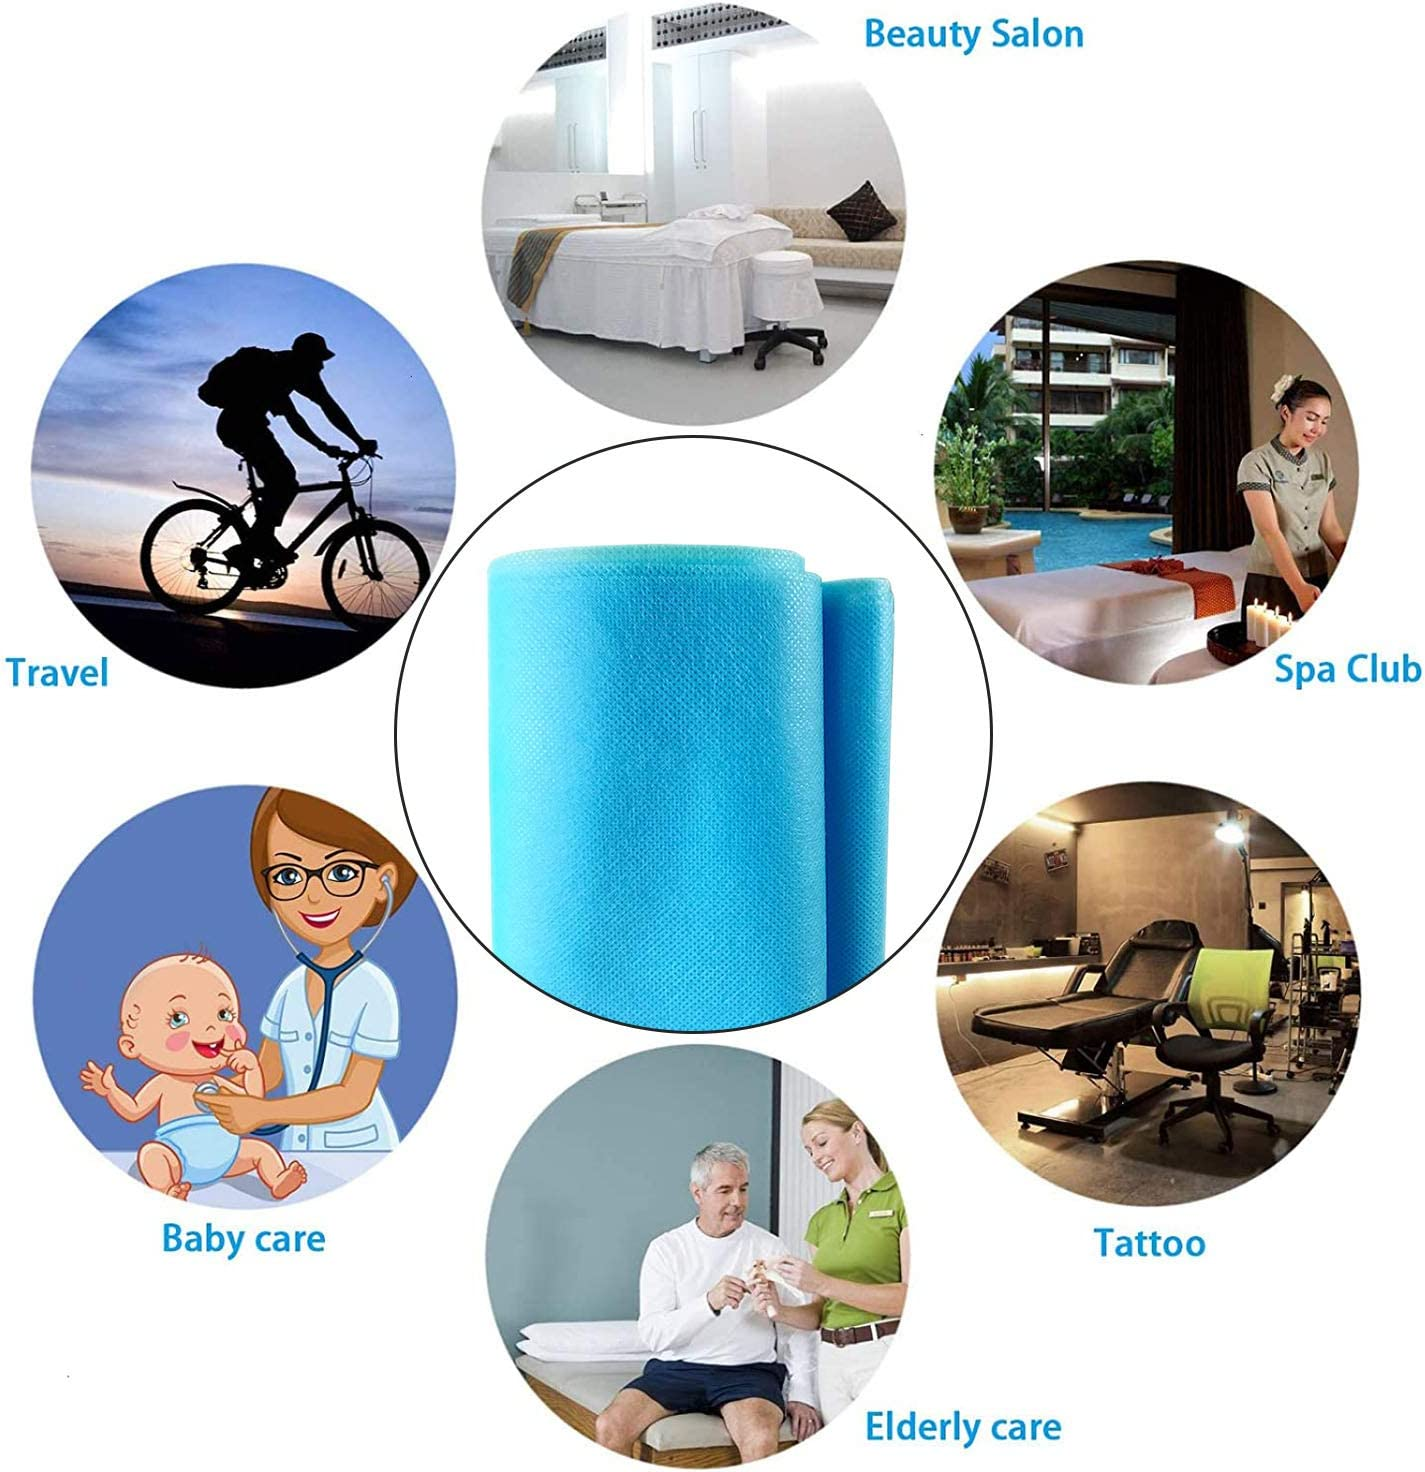 DIY Handmade Material WFB20004 Cloth Disposable Waterproof Non-Woven Fabric 20m//787.40in 95/% Polypropylene Fabric Necessities Thickened Disposable Non-Woven Fabric